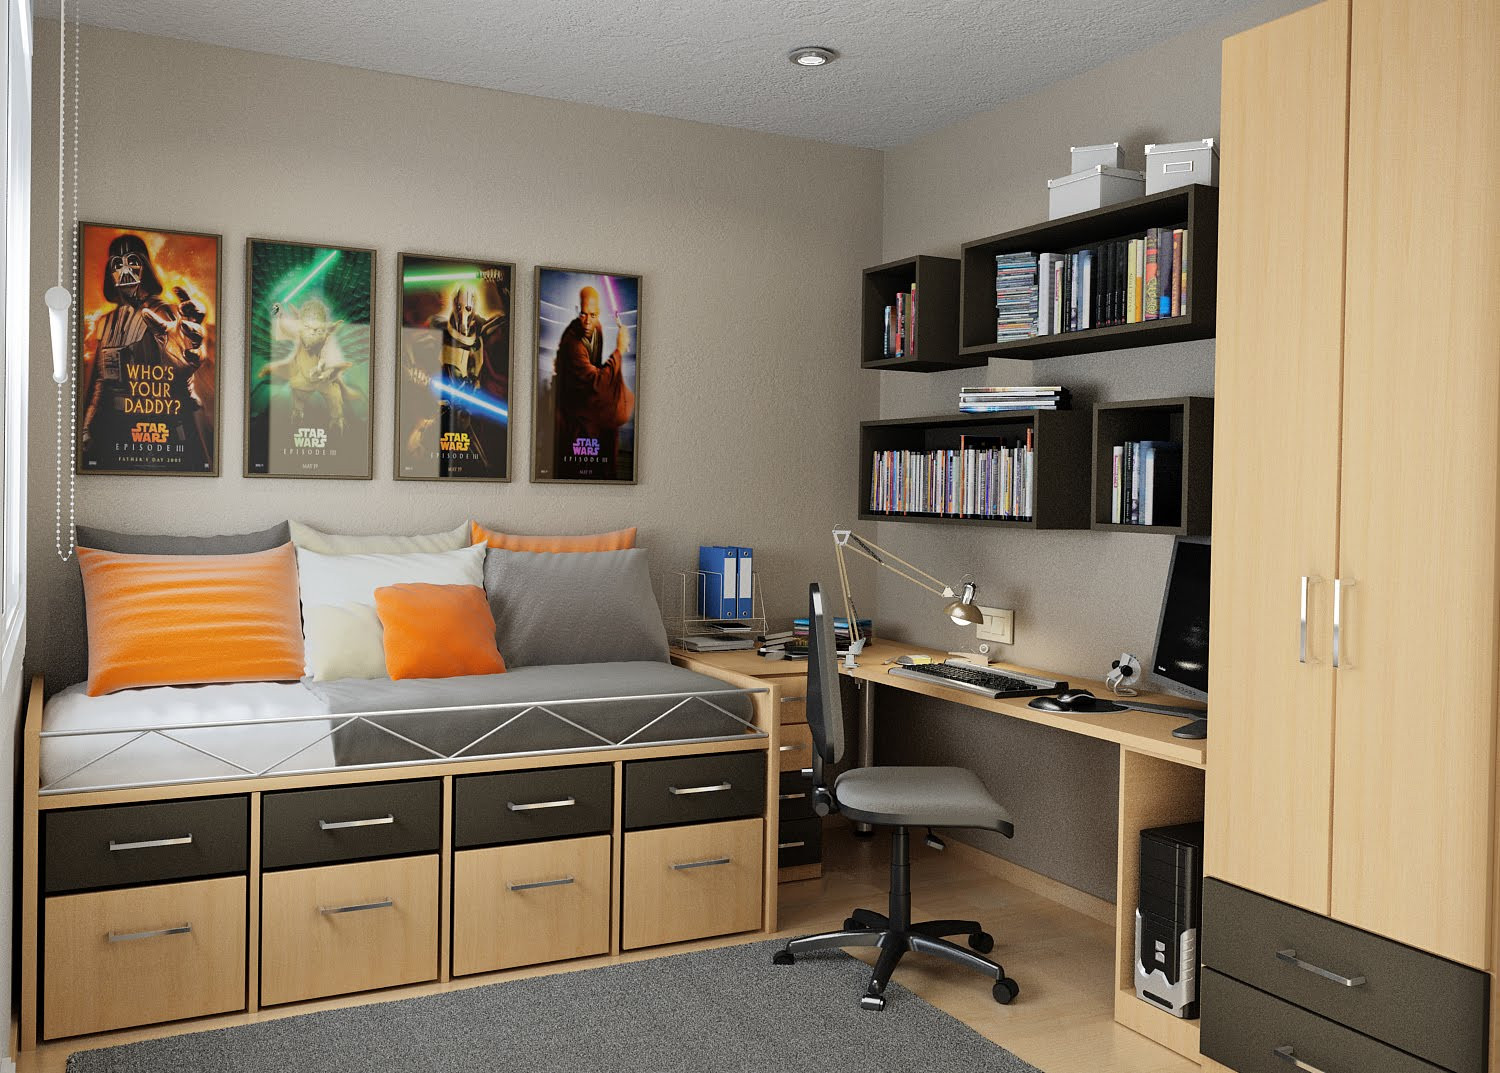 Small Bedroom Solutions  Small Bedroom Storage Solutions Designed to Save up Space